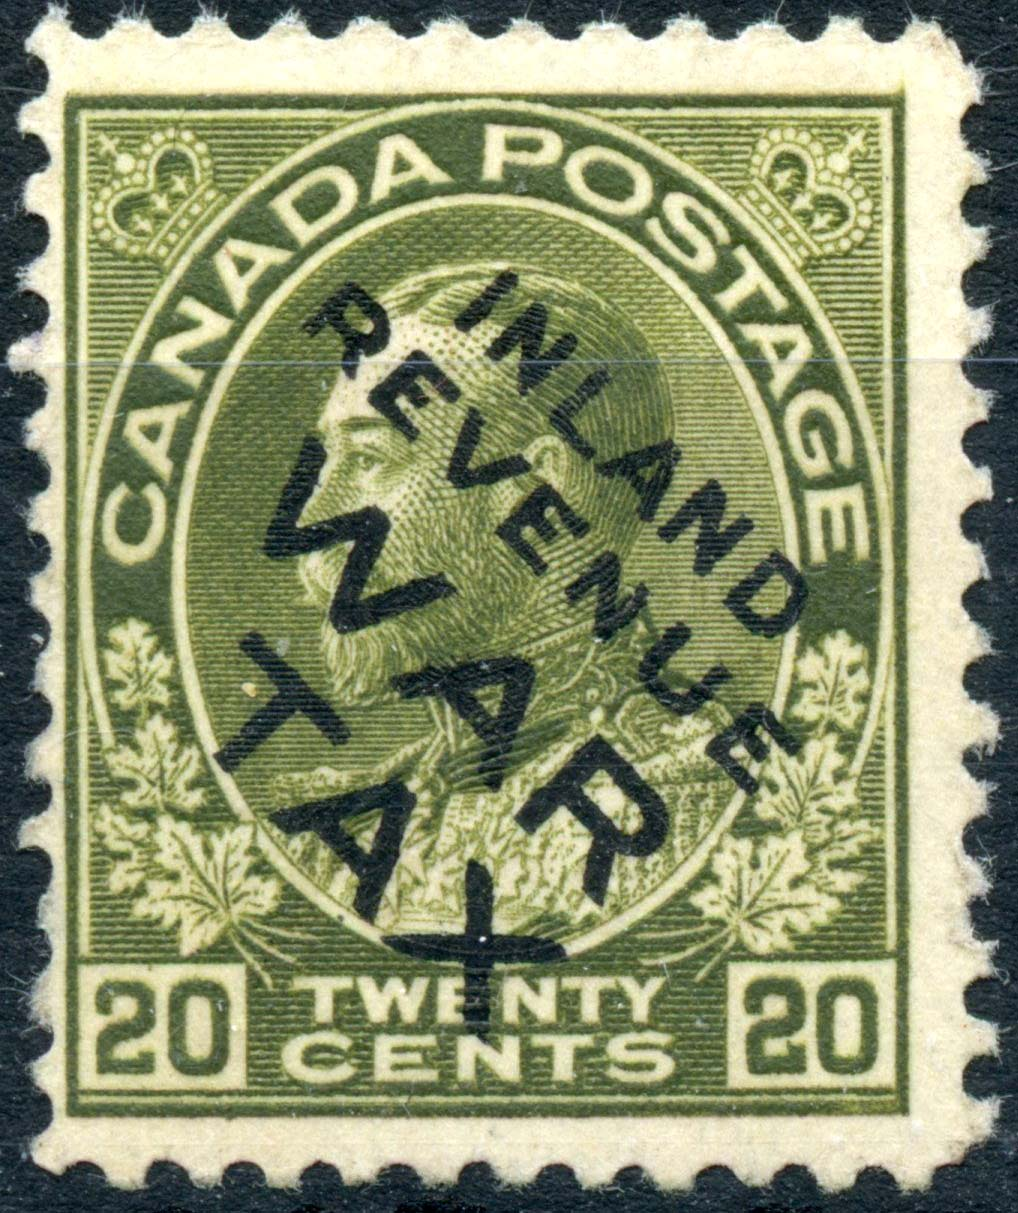 King Georges V - 20 cents 1921 - Canadian stamp - Scott MR2Ci - Overprint Inland revenue - War Tax